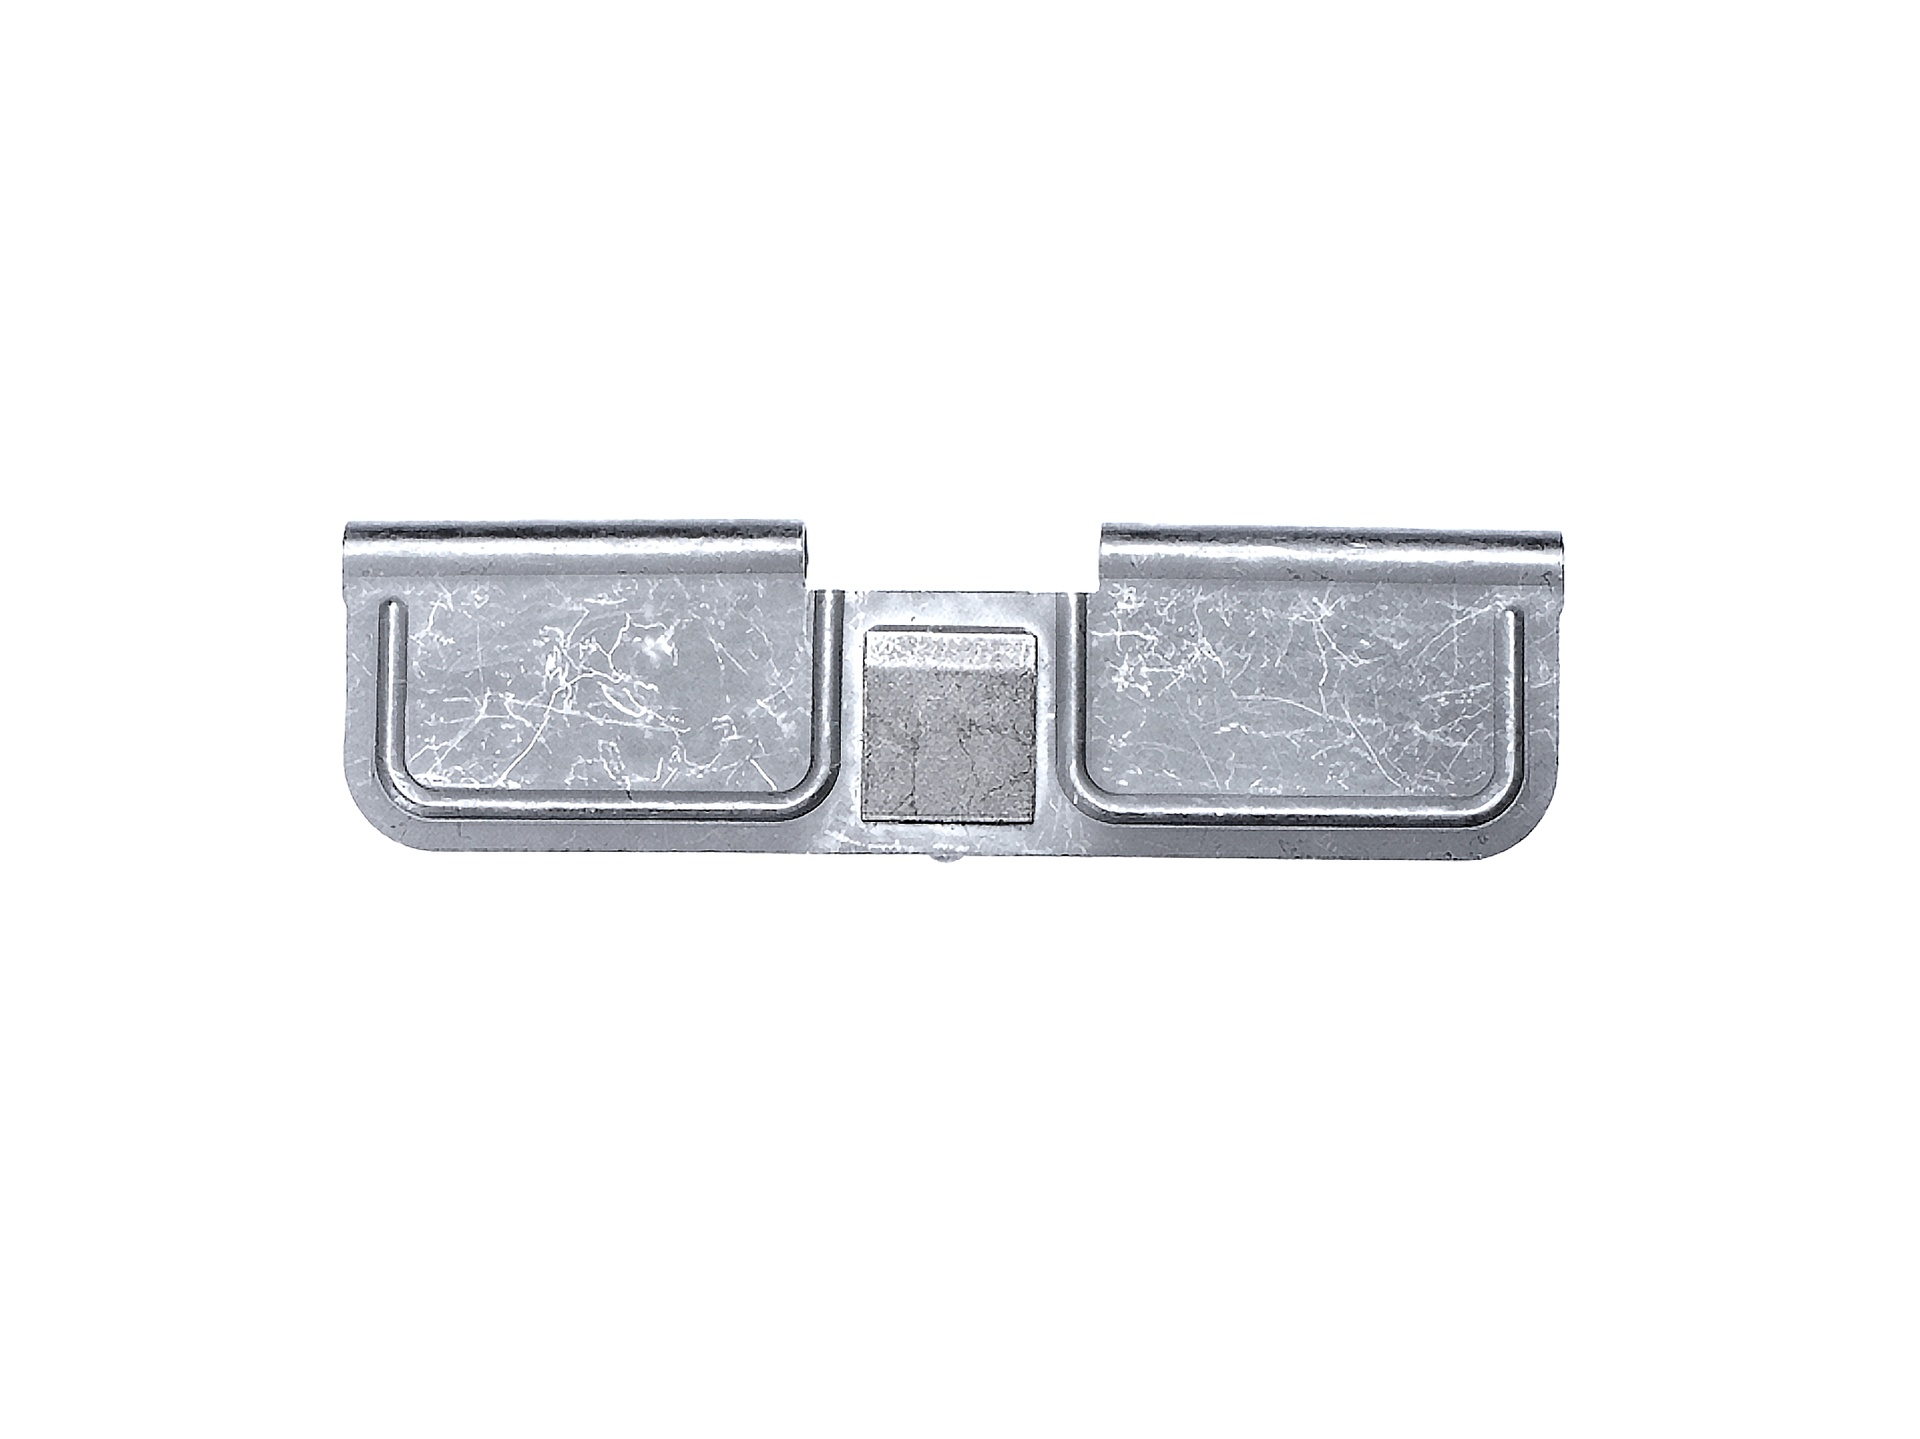 AR15/M16 - Ejection Port Cover Door